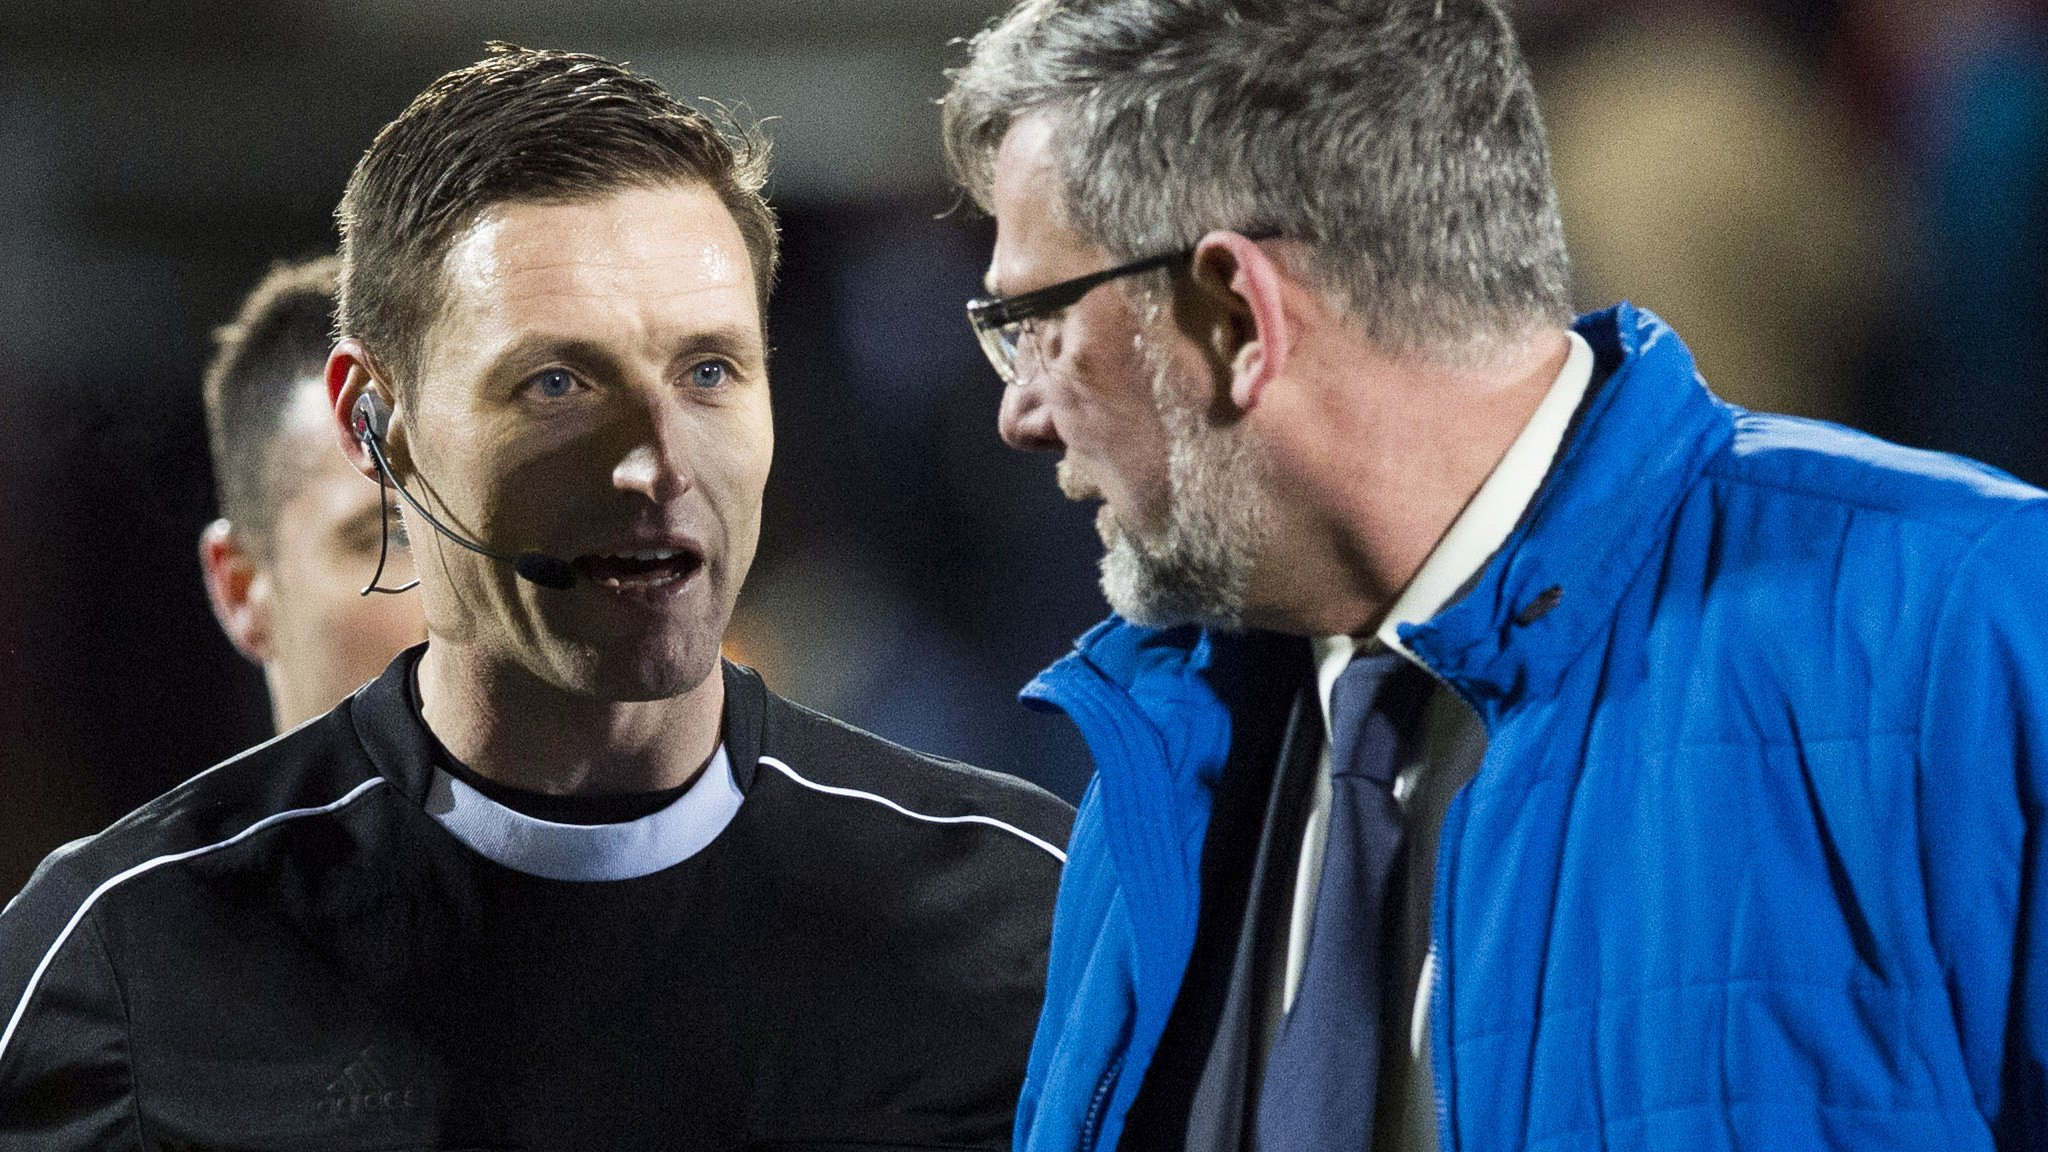 Hearts' Craig Levein backs VAR ahead of salaried referees